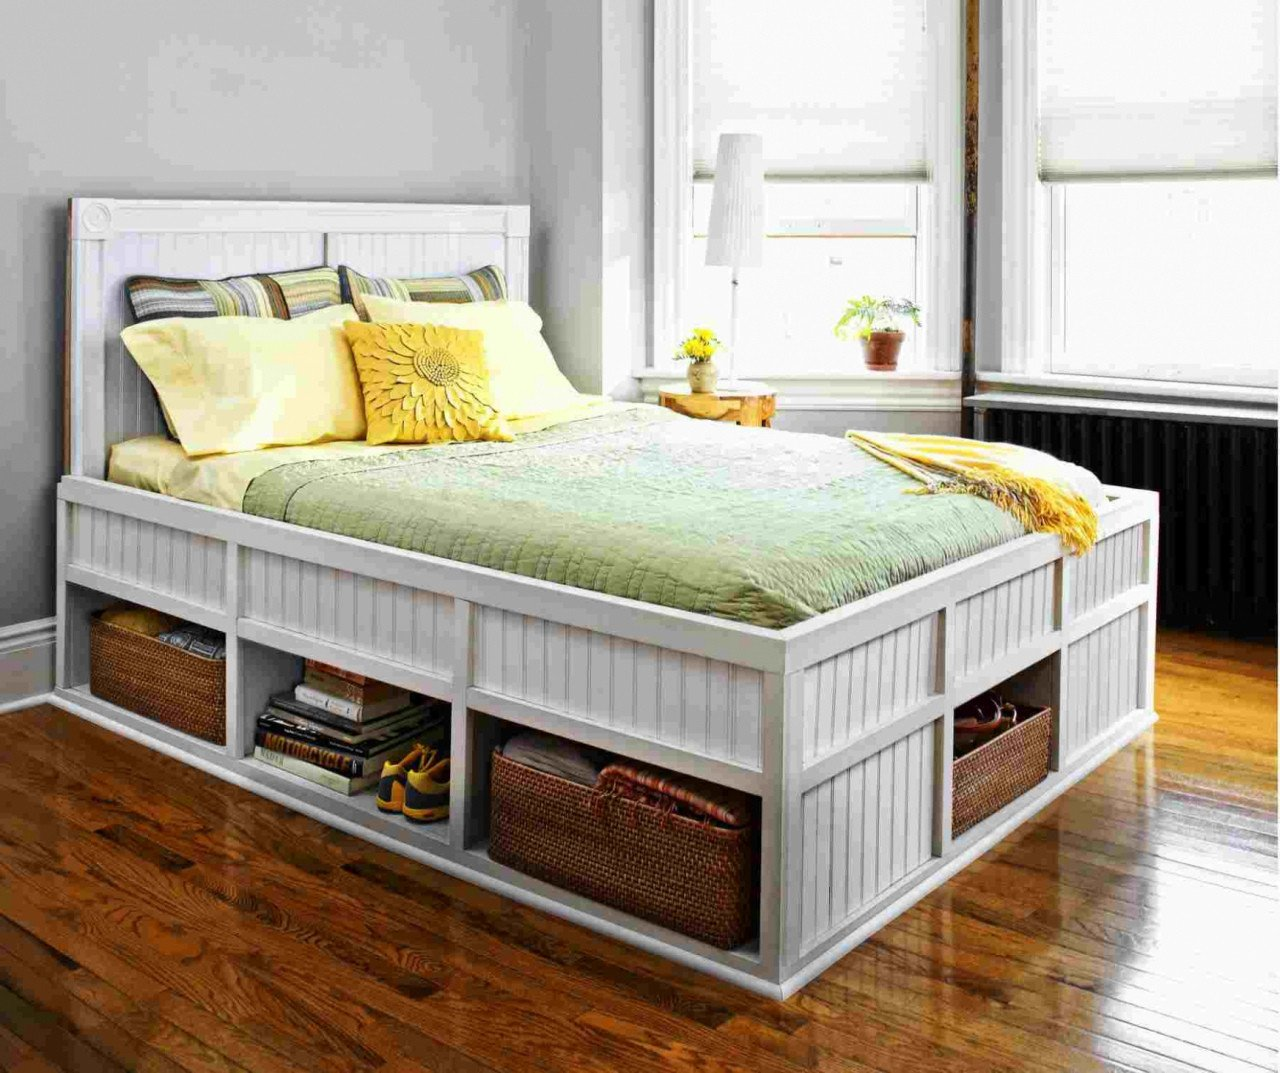 Solid Cherry Wood Bedroom Furniture Fresh Queen Storage Bed Frame — Procura Home Blog